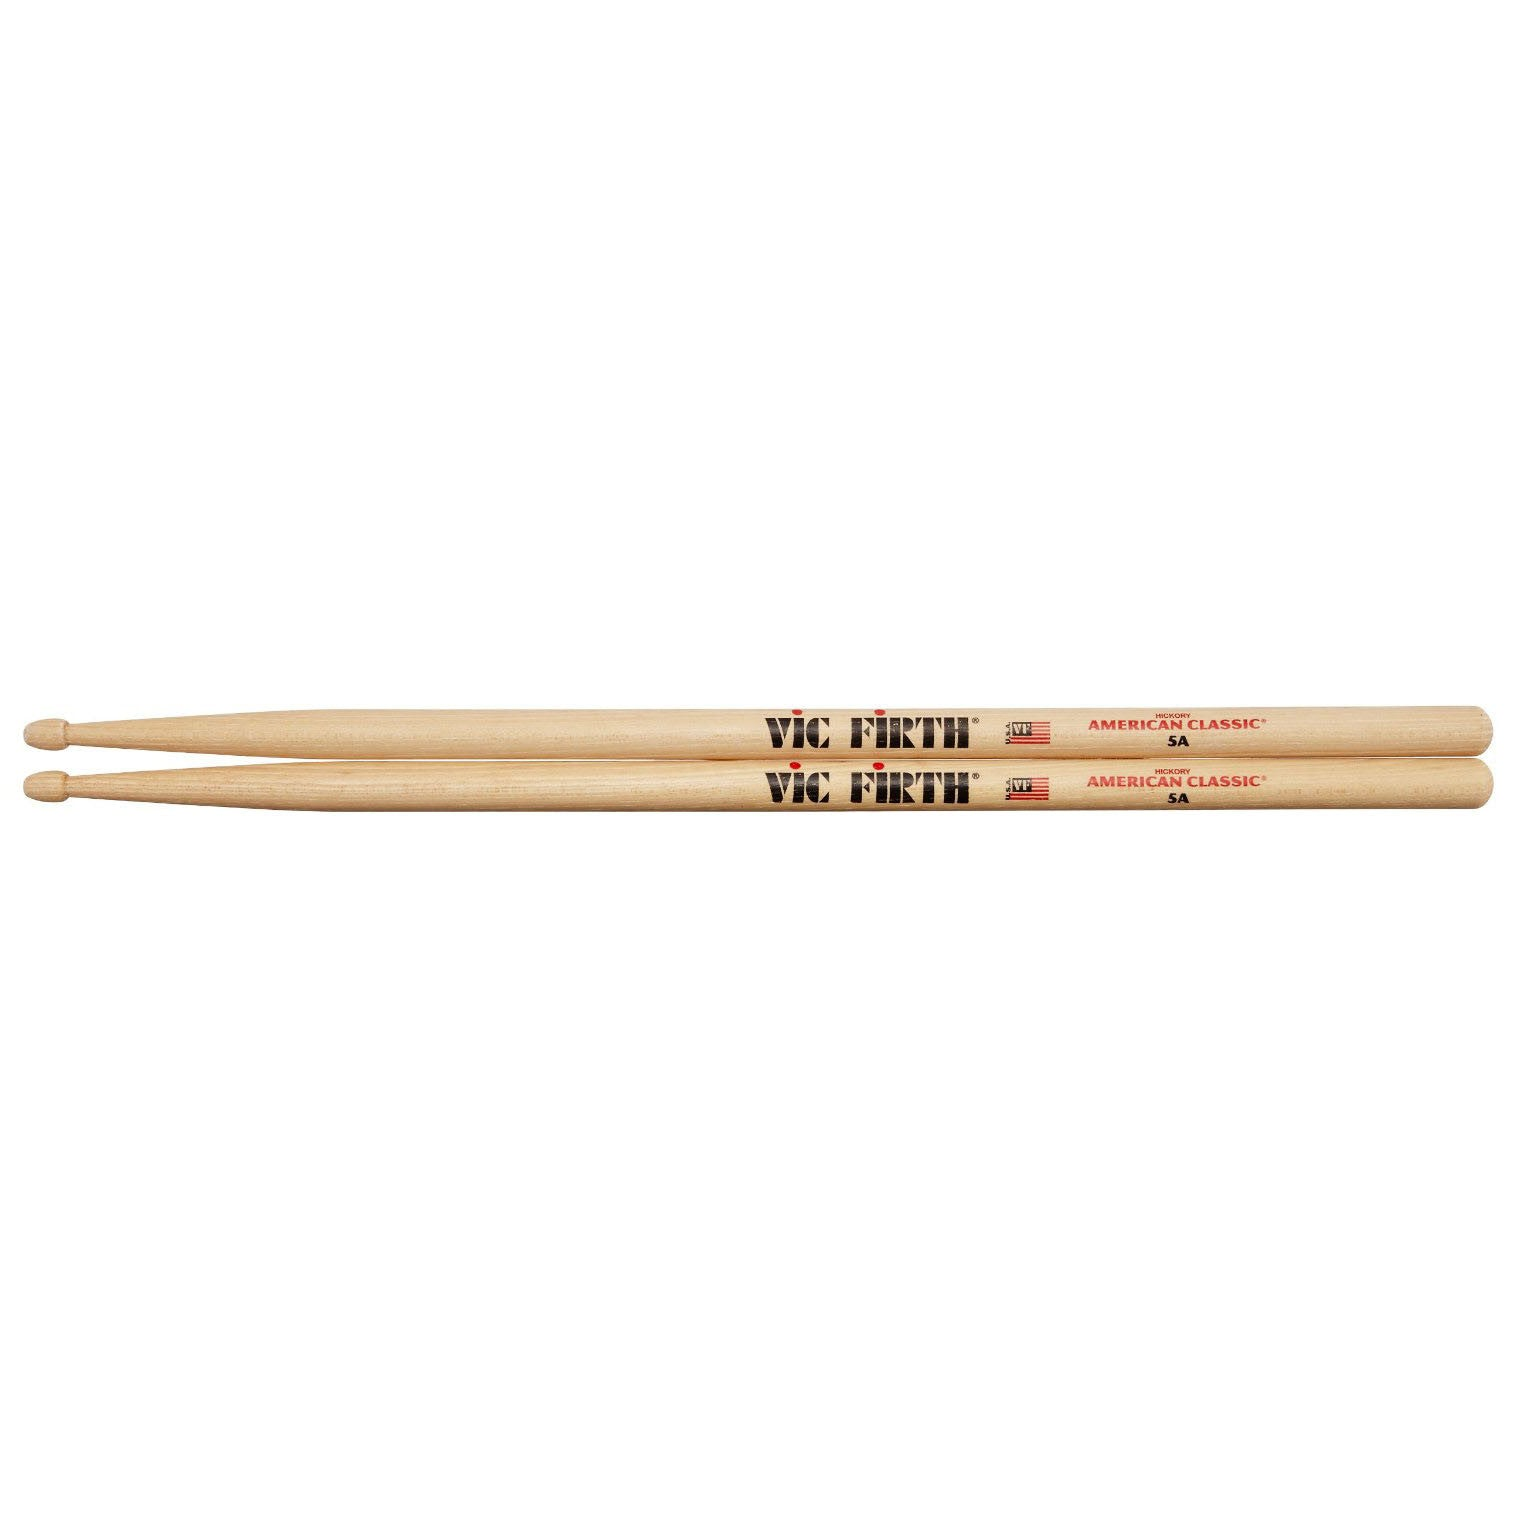 Shop online for Vic Firth American Classic Hickory Wood Tip 5A Drum Stick today.  Now available for purchase from Midlothian Music of Orland Park, Illinois, USA